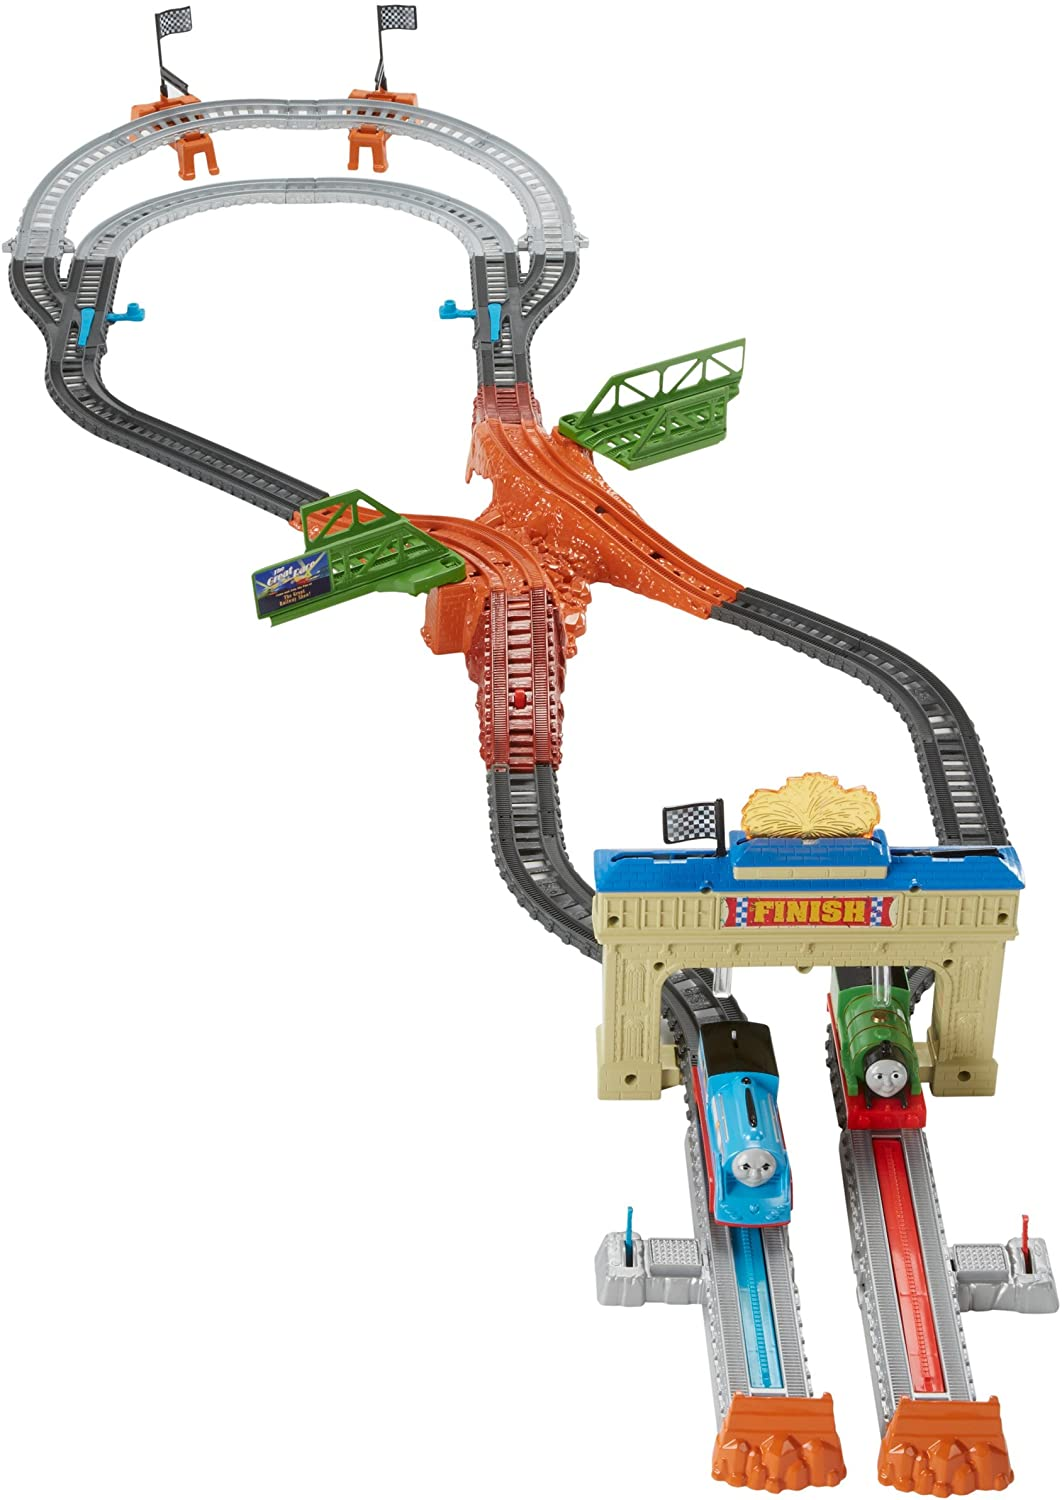 Fisher price thomas amp friends trackmaster treasure chase set new - Amazon Com Fisher Price Thomas Friends Trackmaster Motorized Railway Race Playset Toys Games